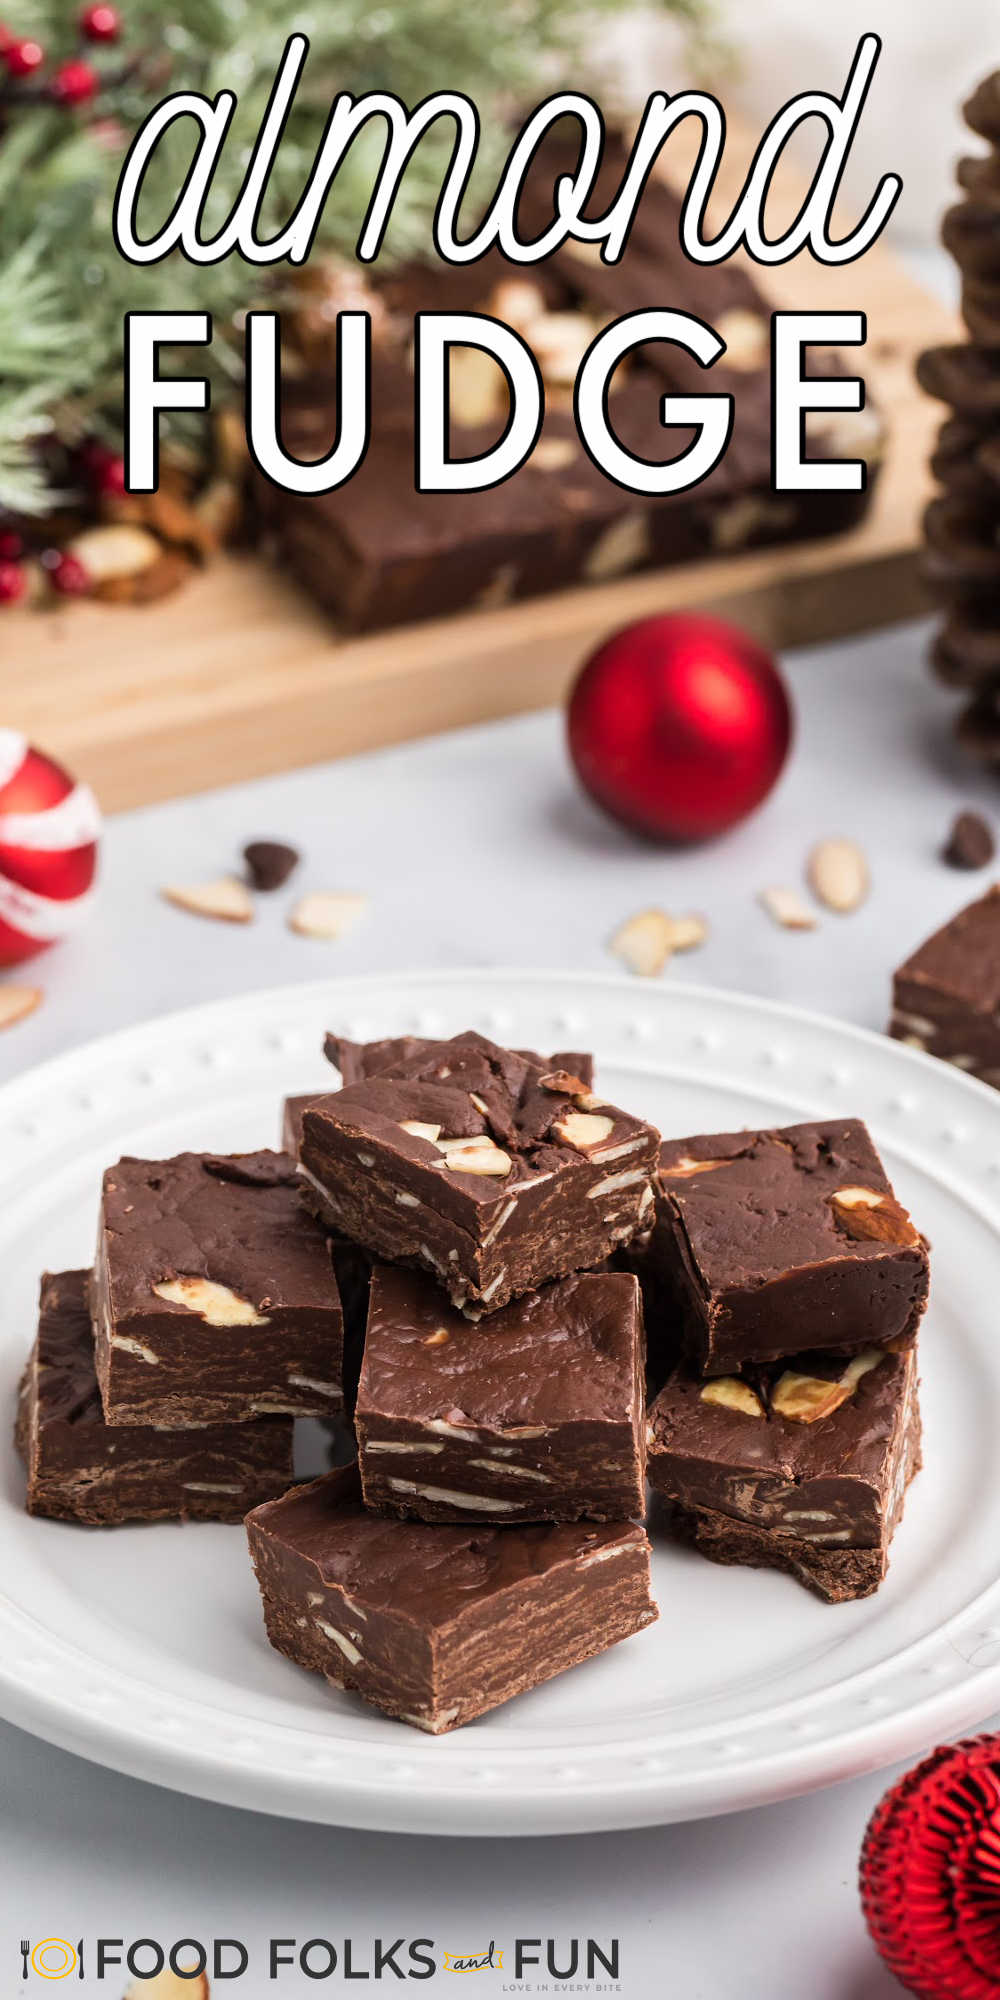 This Easy Chocolate Fudge recipe is studded with almonds and simple to make. All you need are just four ingredients to make this easy fudge!  via @foodfolksandfun